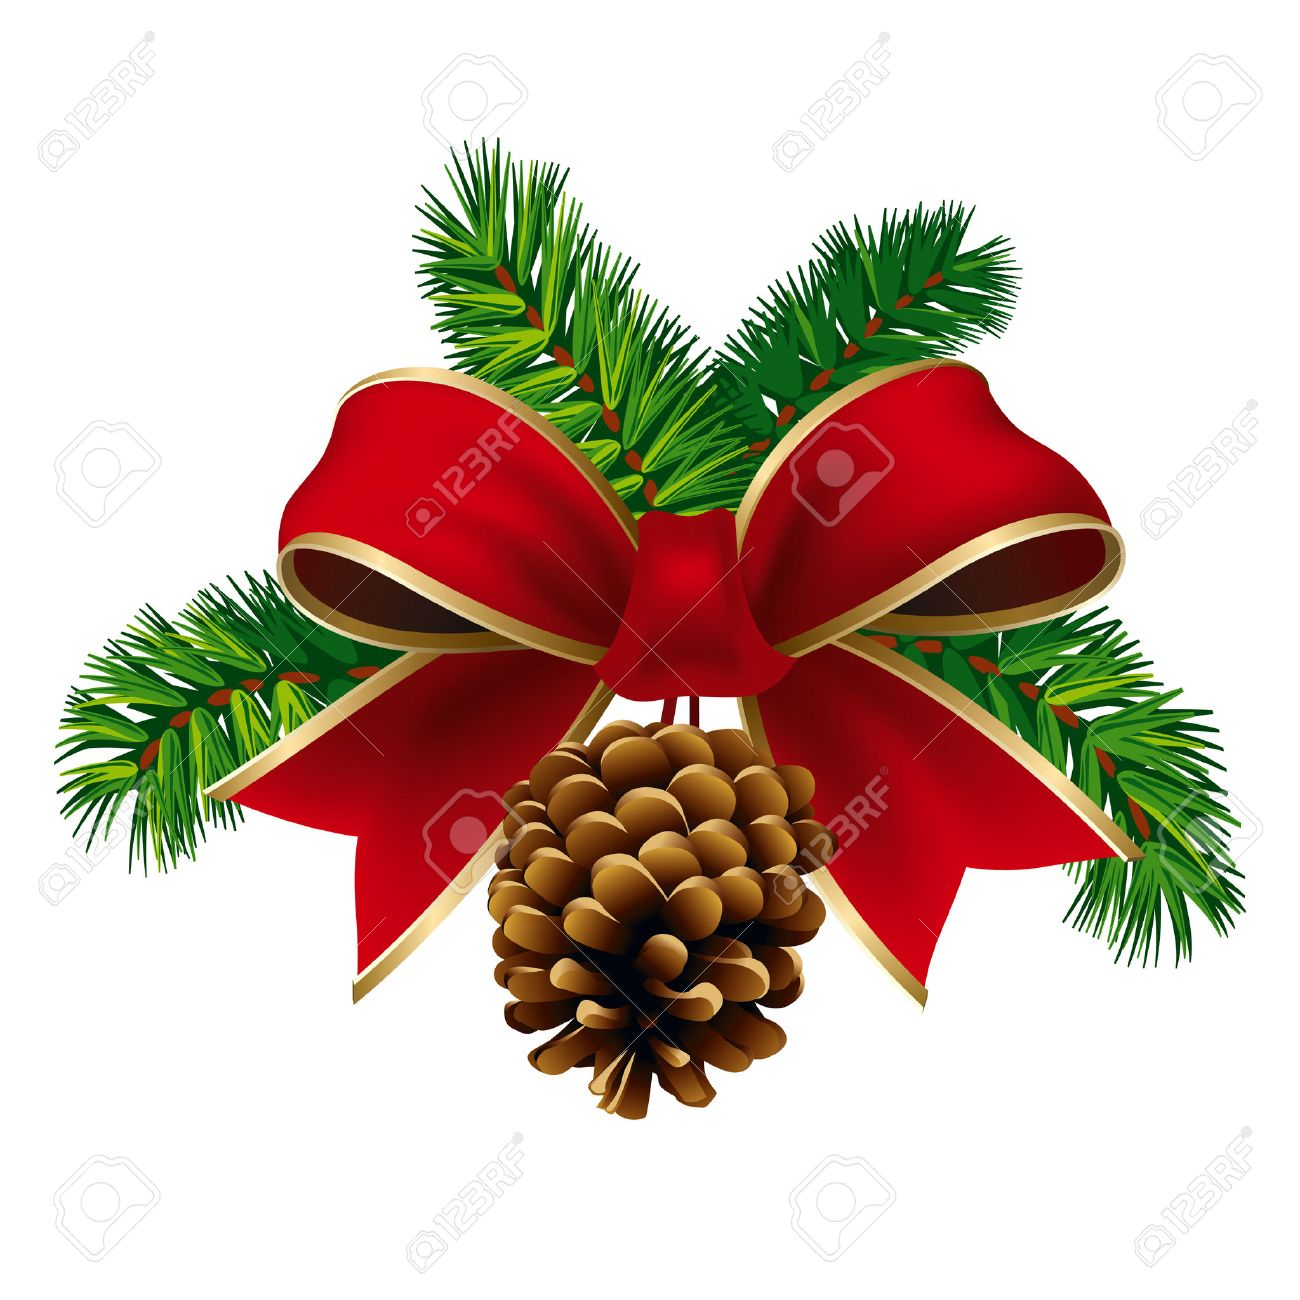 Christmas pine twigs with red ribbon and pine cone. Vector Illustration.